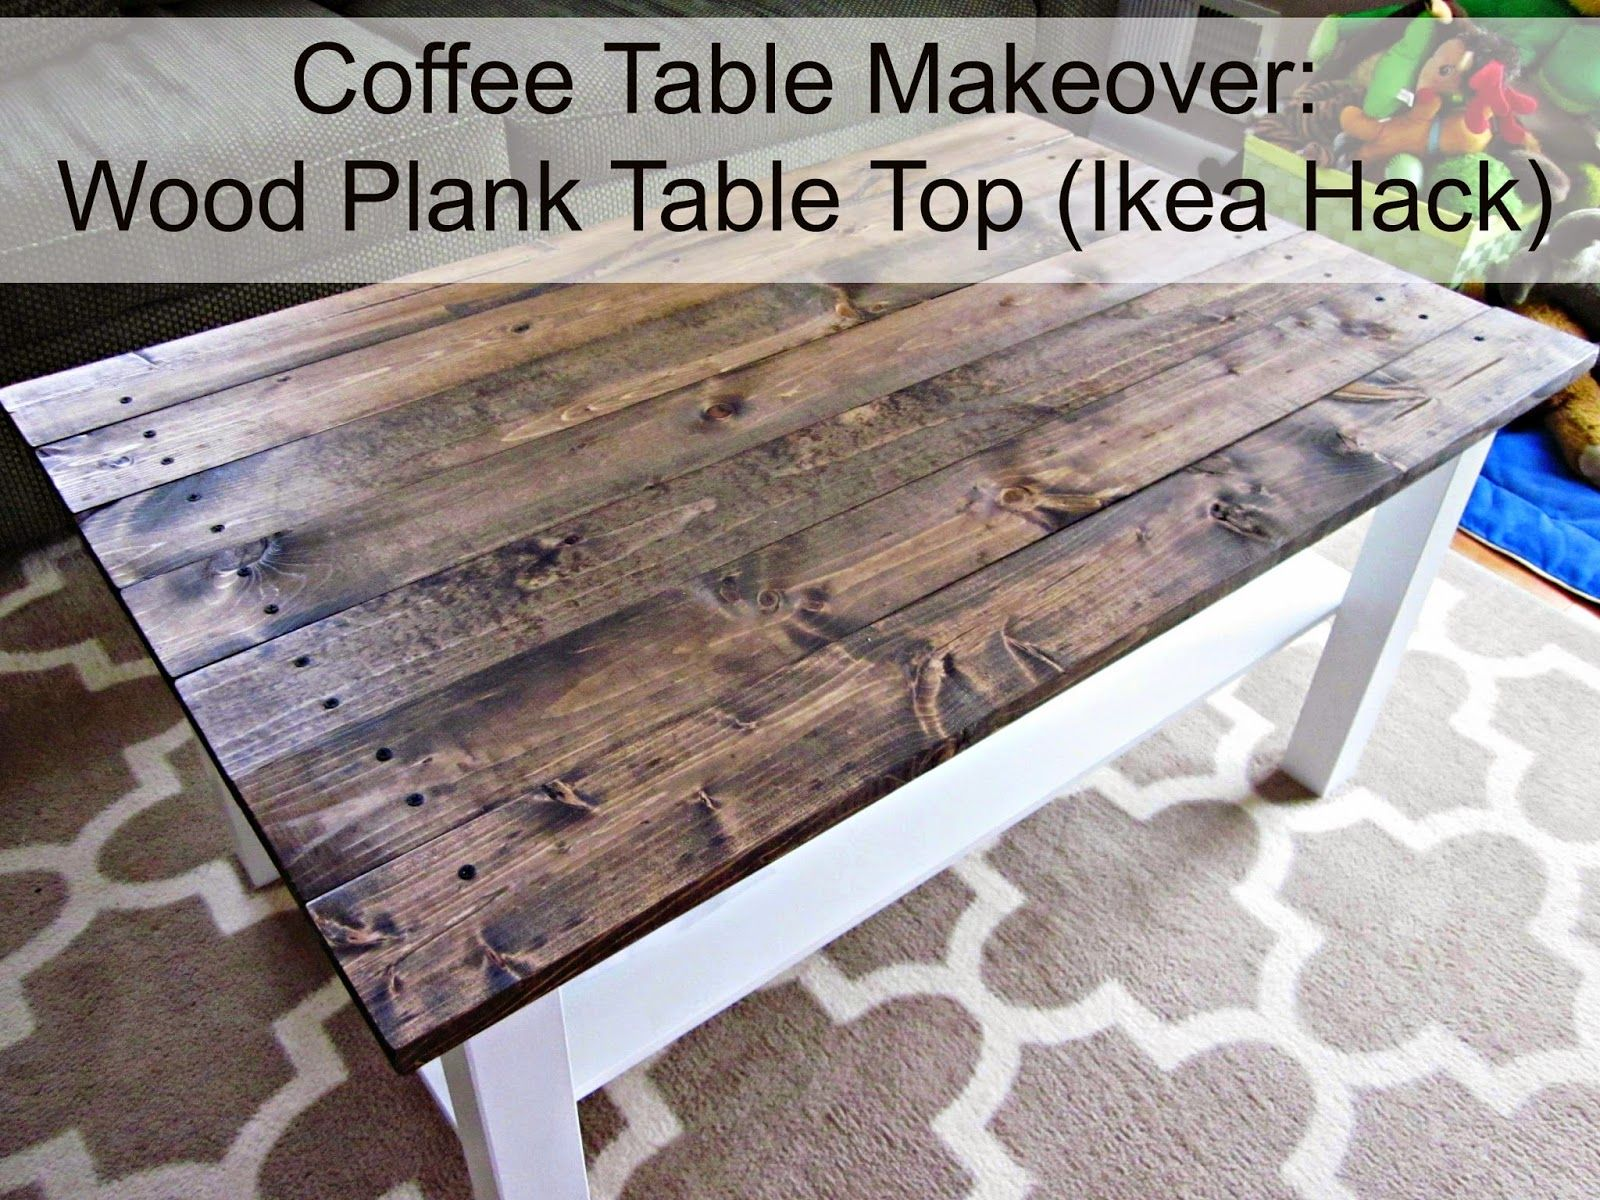 Tremendous Coffee Table Makeover Wood Plank Table Top Ikea Hack Short Links Chair Design For Home Short Linksinfo